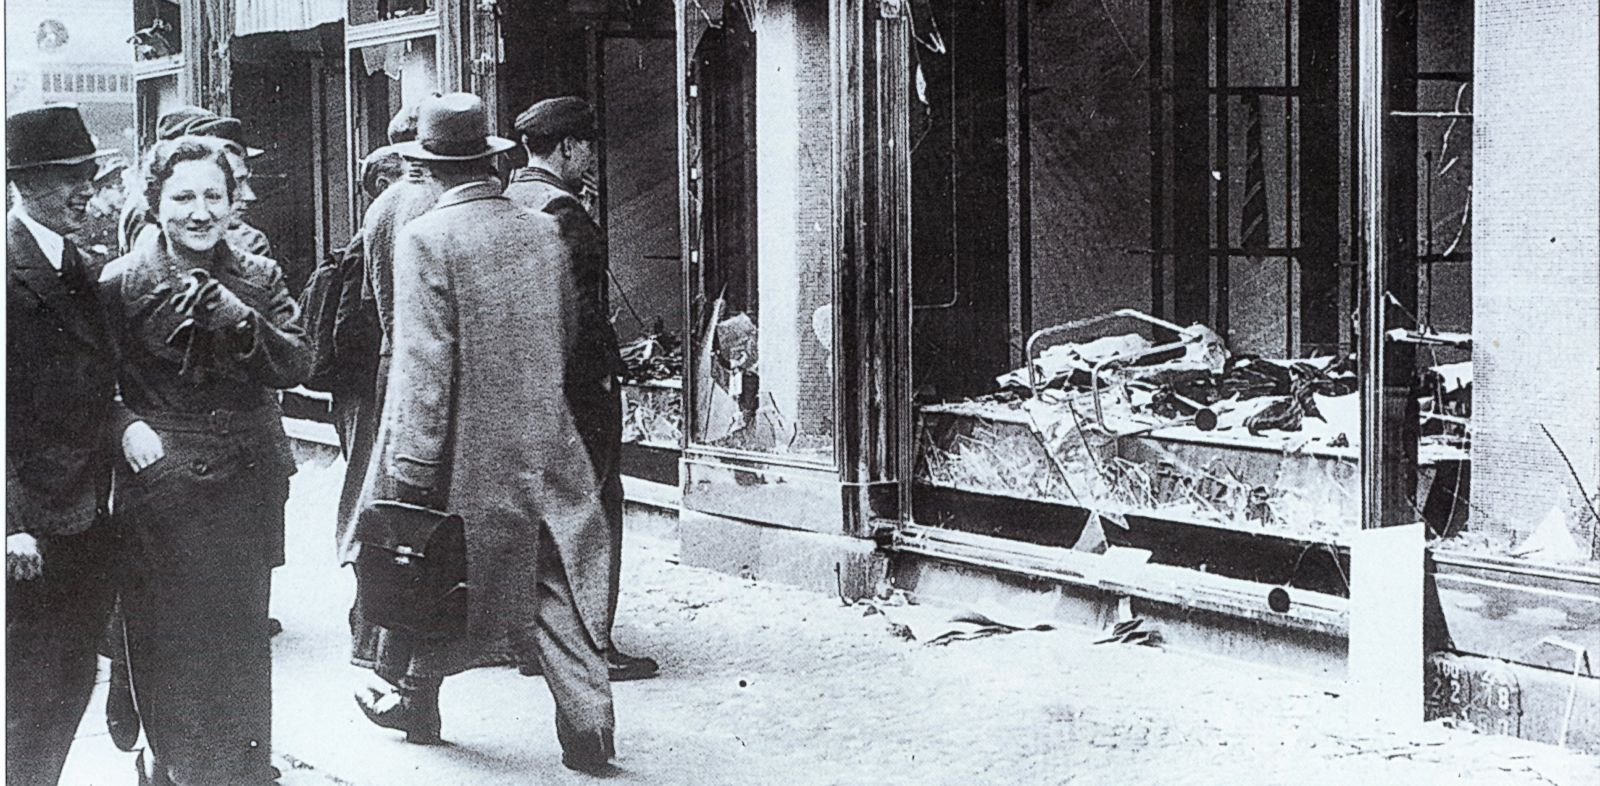 PHOTO: Pedestrians glance at the broken windows of a Jewish owned shop in Berlin after the attacks of Kristallnacht, November 1938.